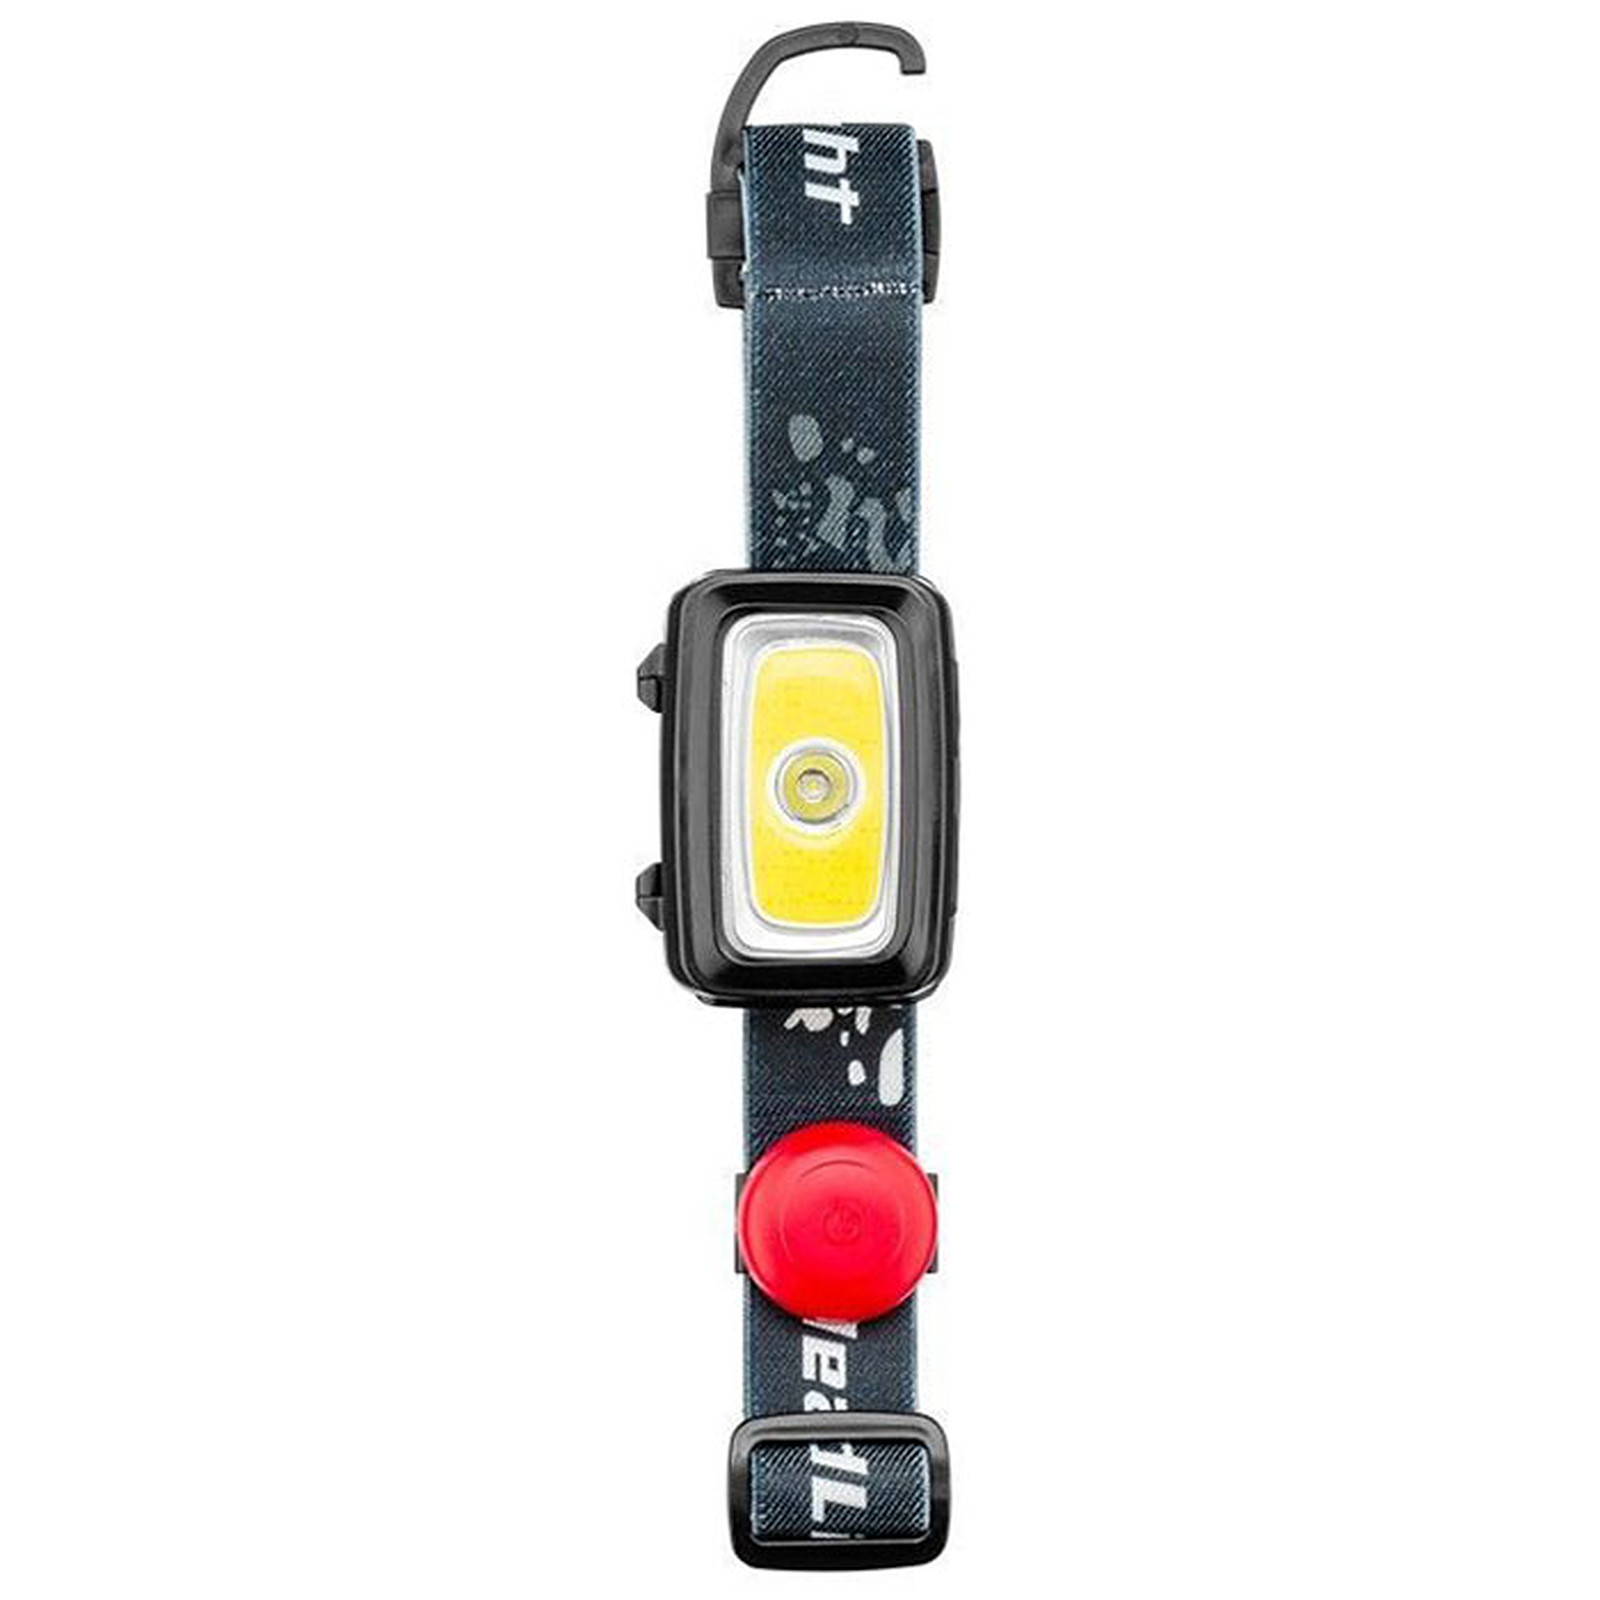 Lampe Frontale High Bright 240 Goobay Led OPnwk0